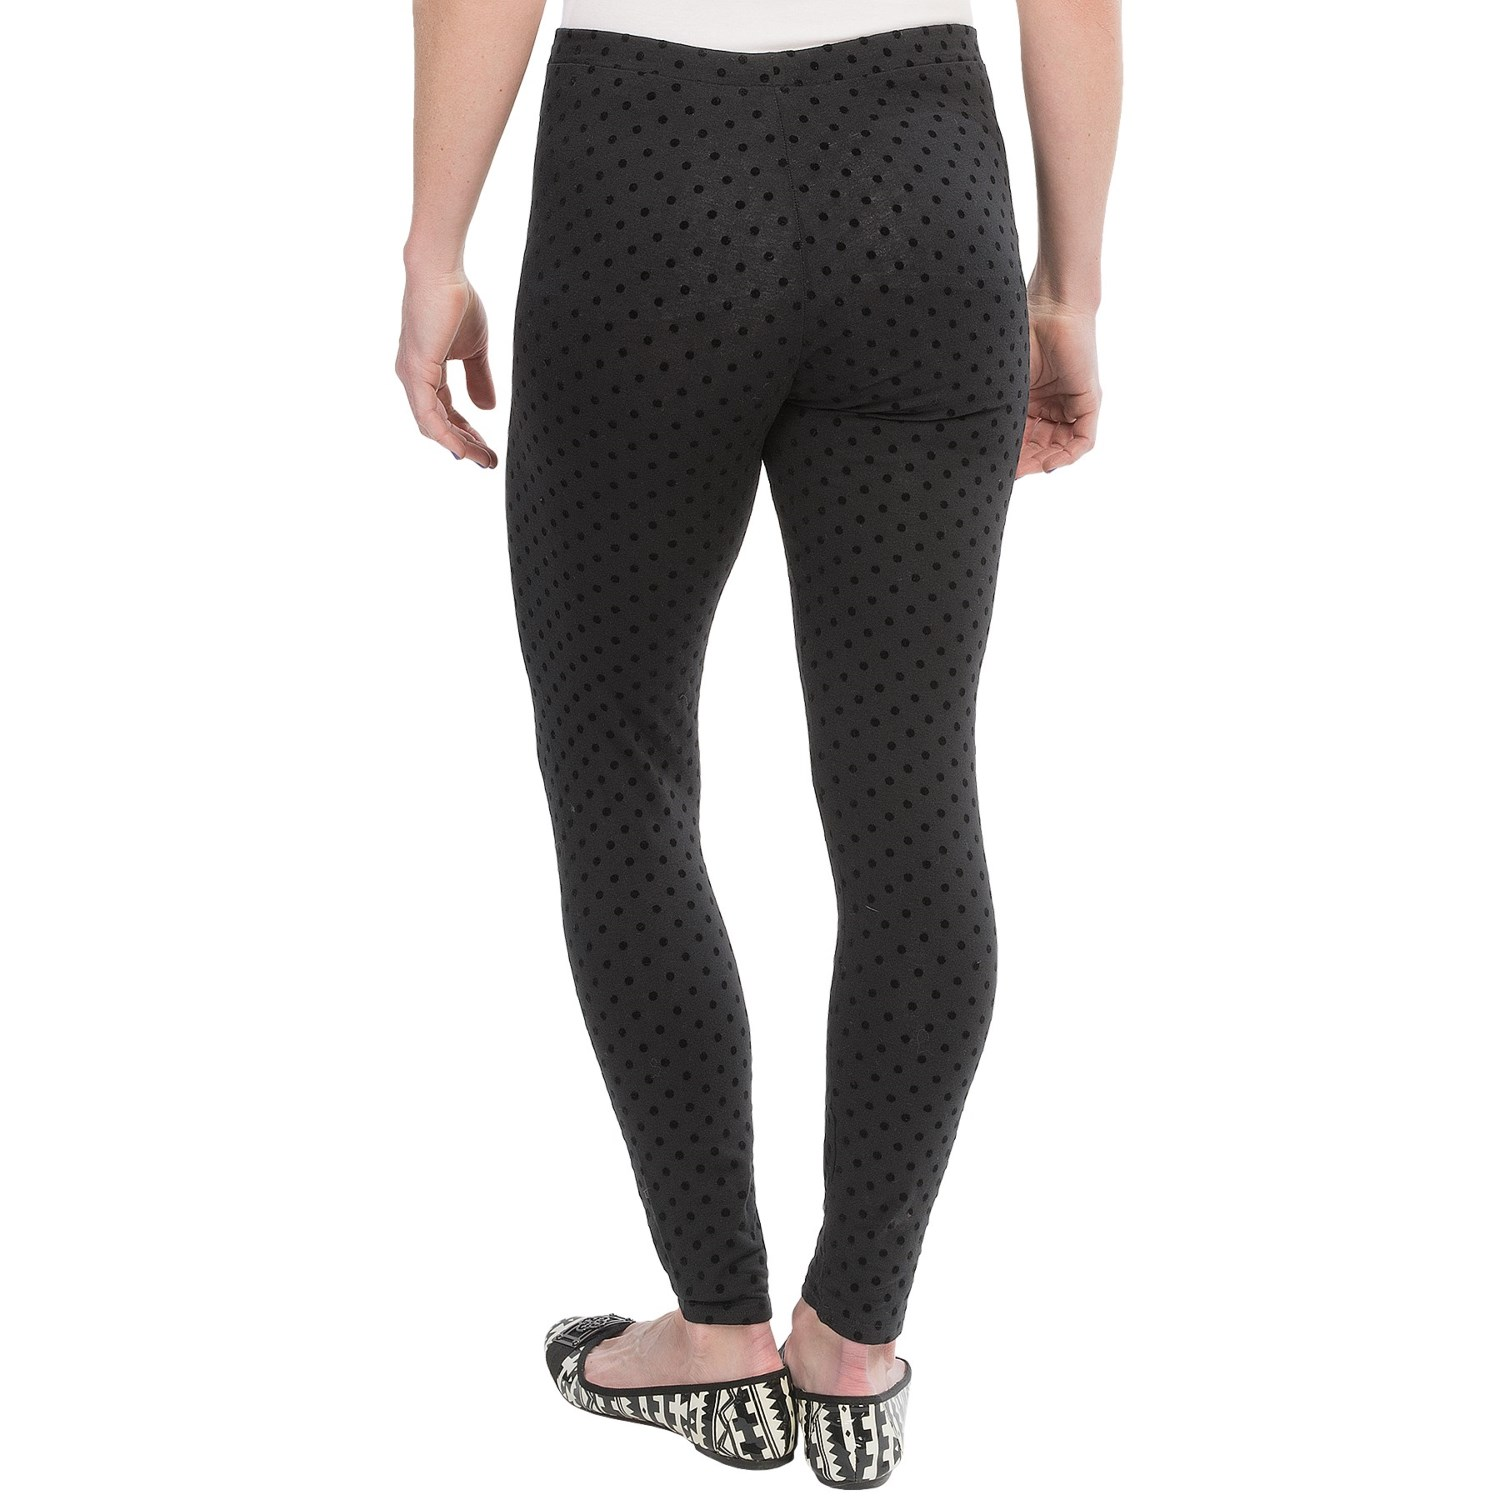 Find great deals on eBay for women cotton leggings. Shop with confidence.